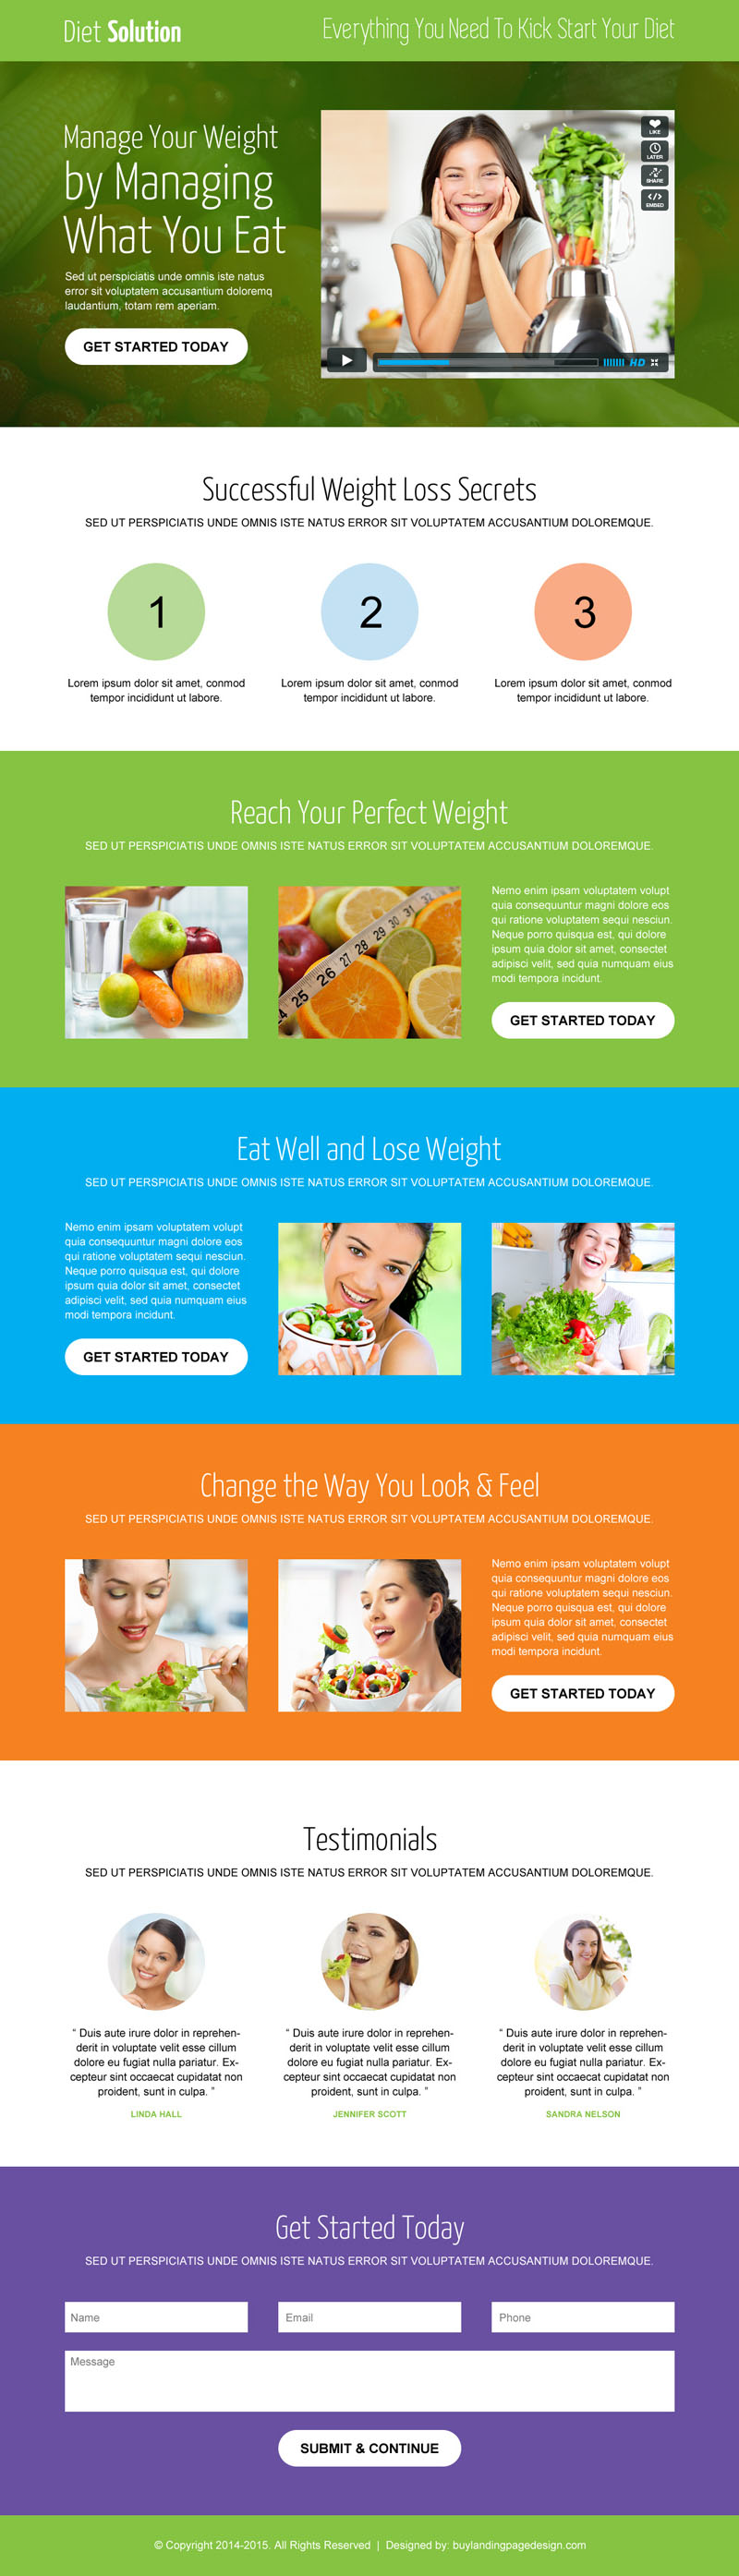 weight-loss-diet-solution-video-call-to-action-and-lead-capture-landing-page-design-template-038